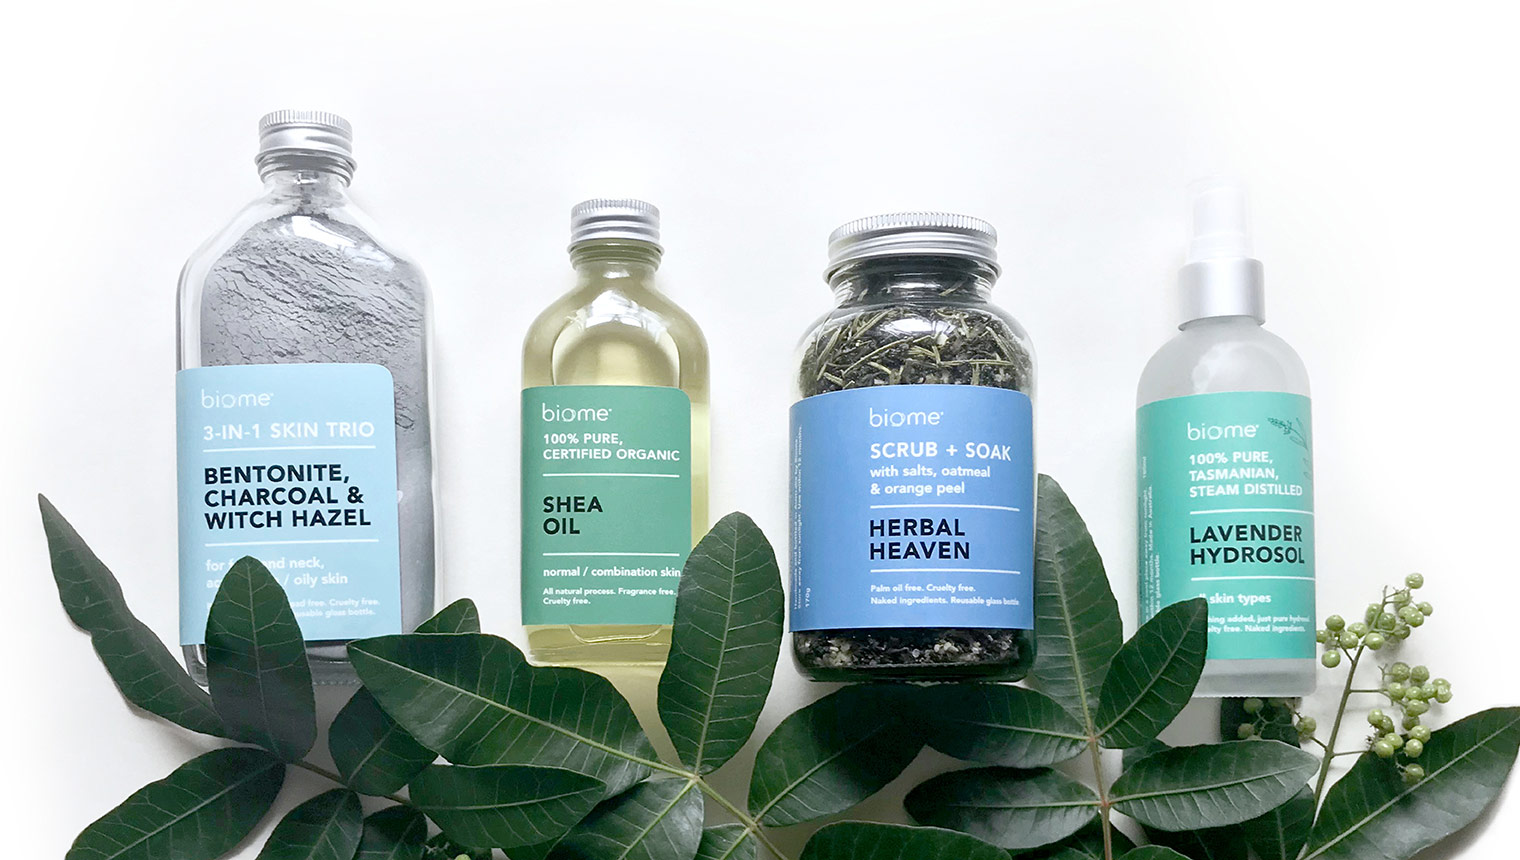 Packaging for 4 clean beauty products by biome eco stores